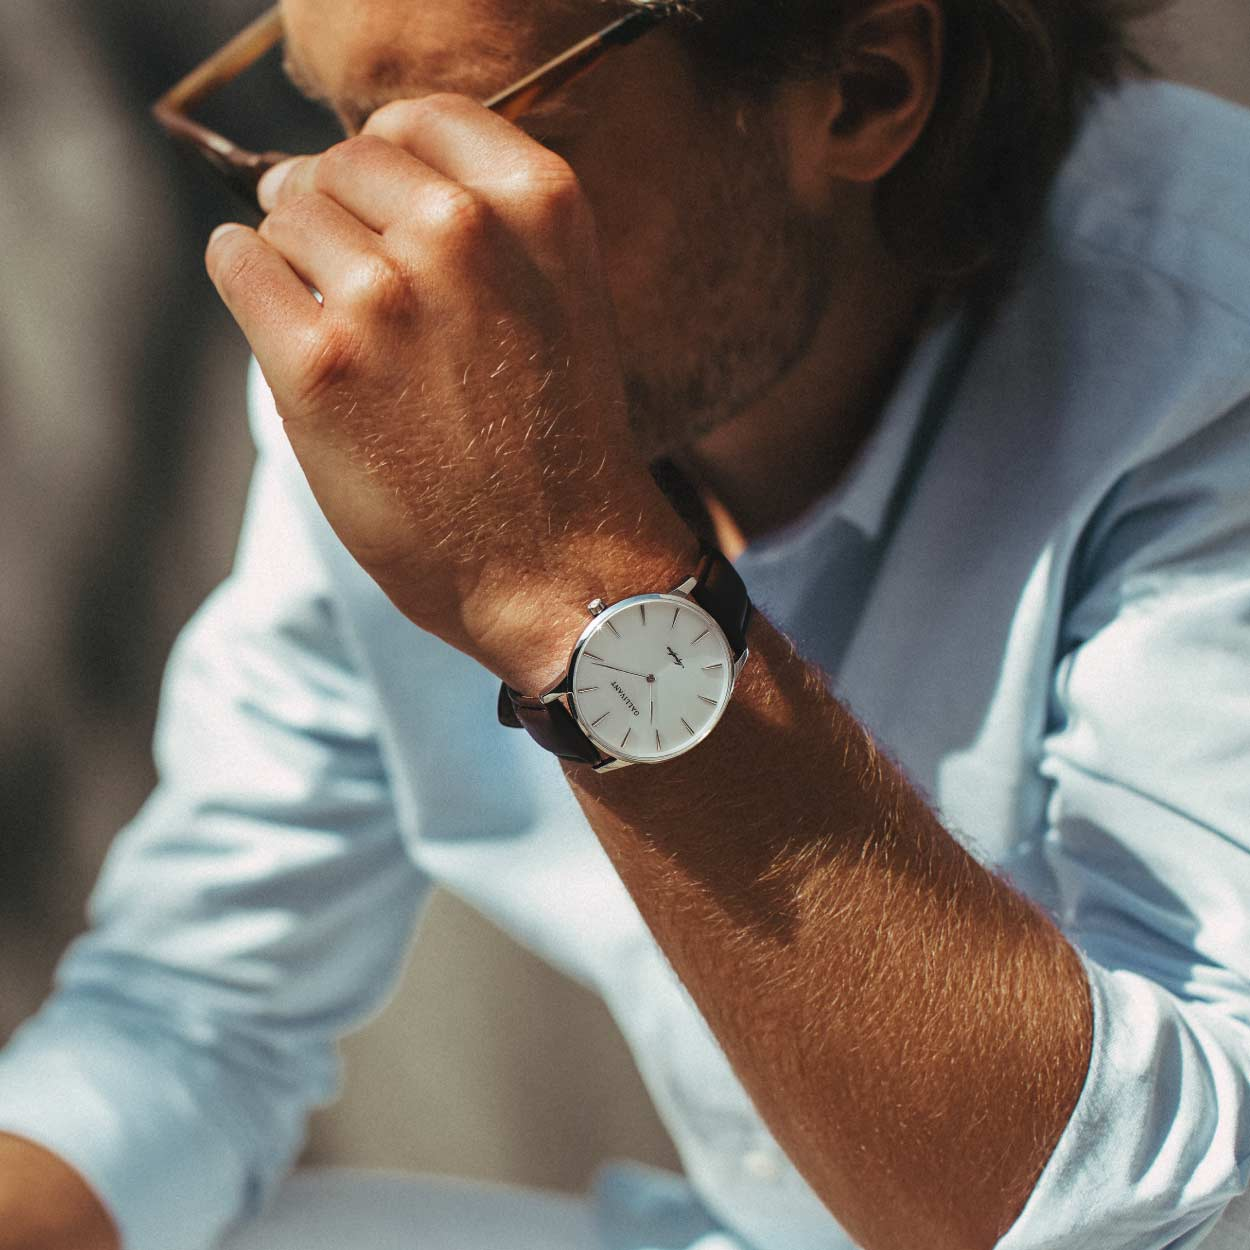 Man with sunglasses and blue shirt wearing a Gallivant Aquafino watch